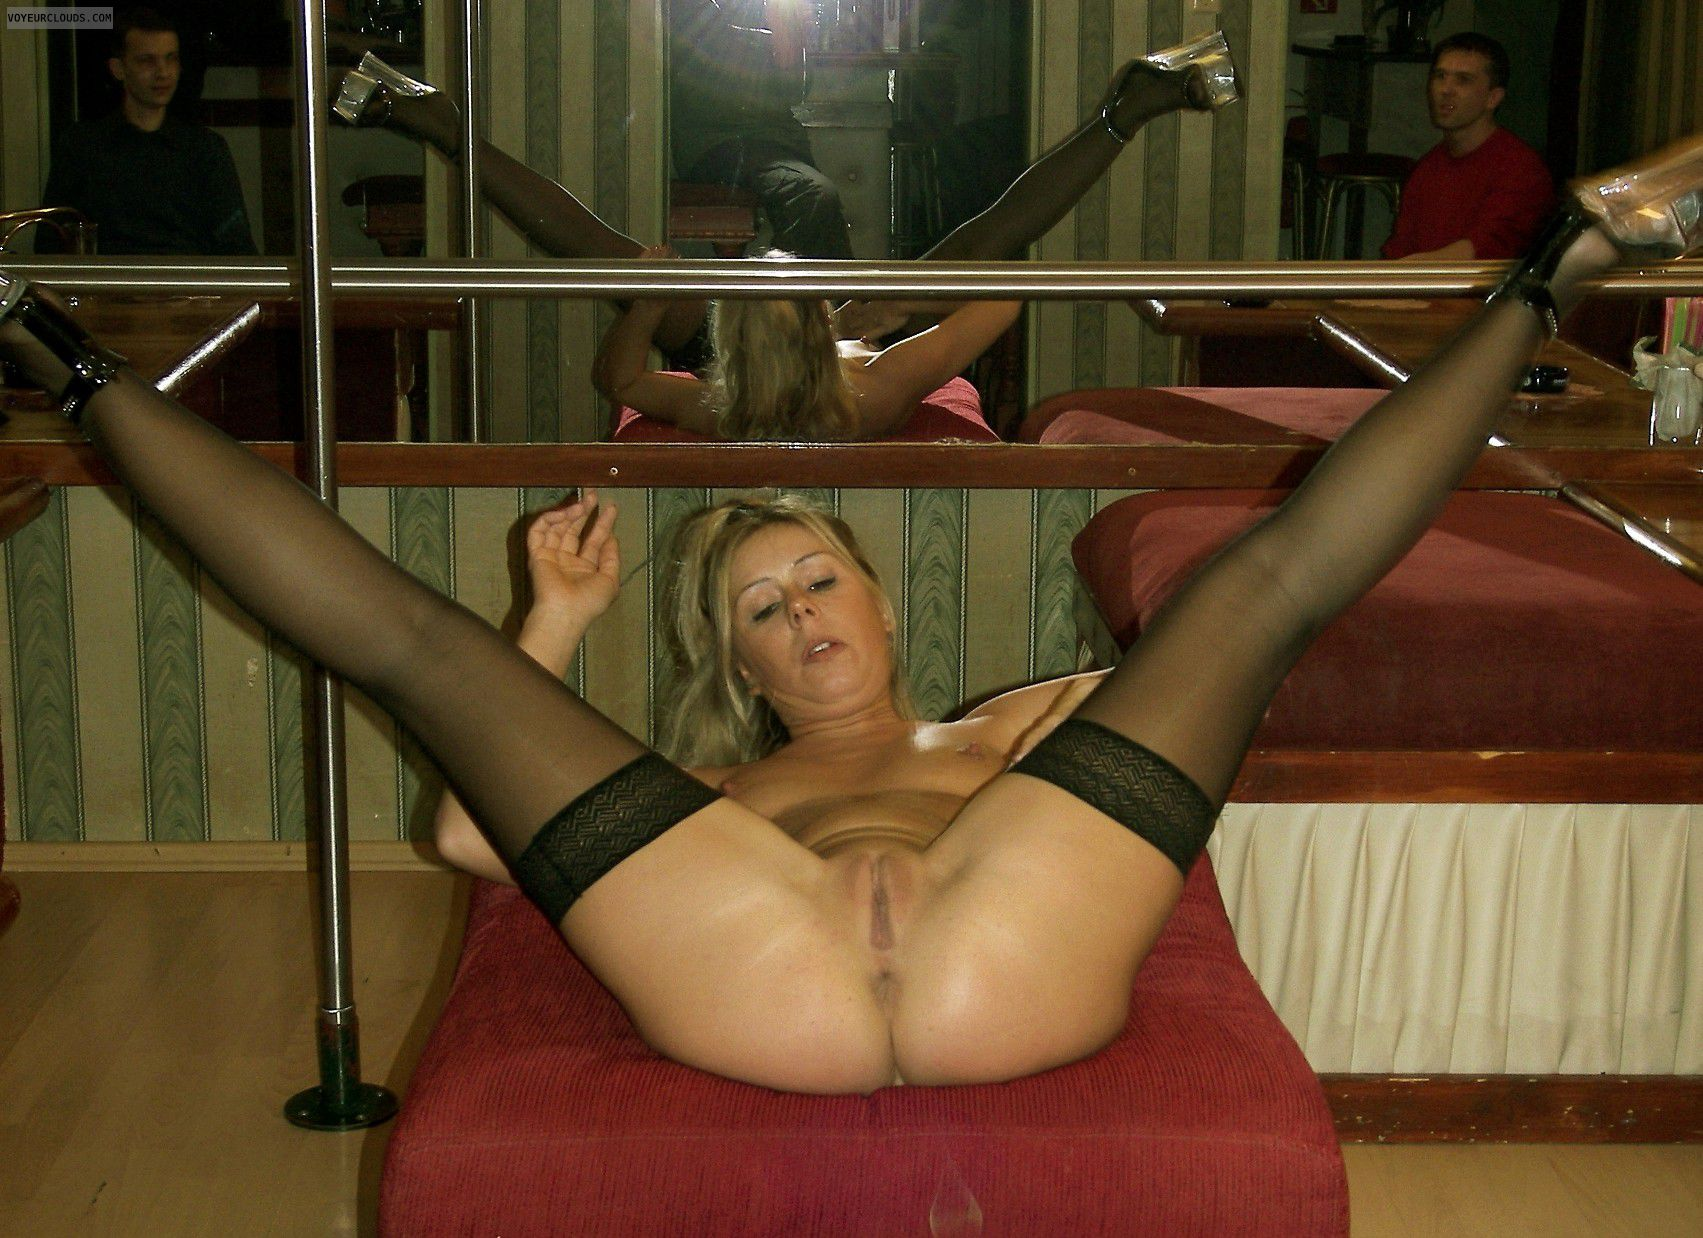 Real german hot wife gangbang in hotel room very hot part 2 - 3 part 9